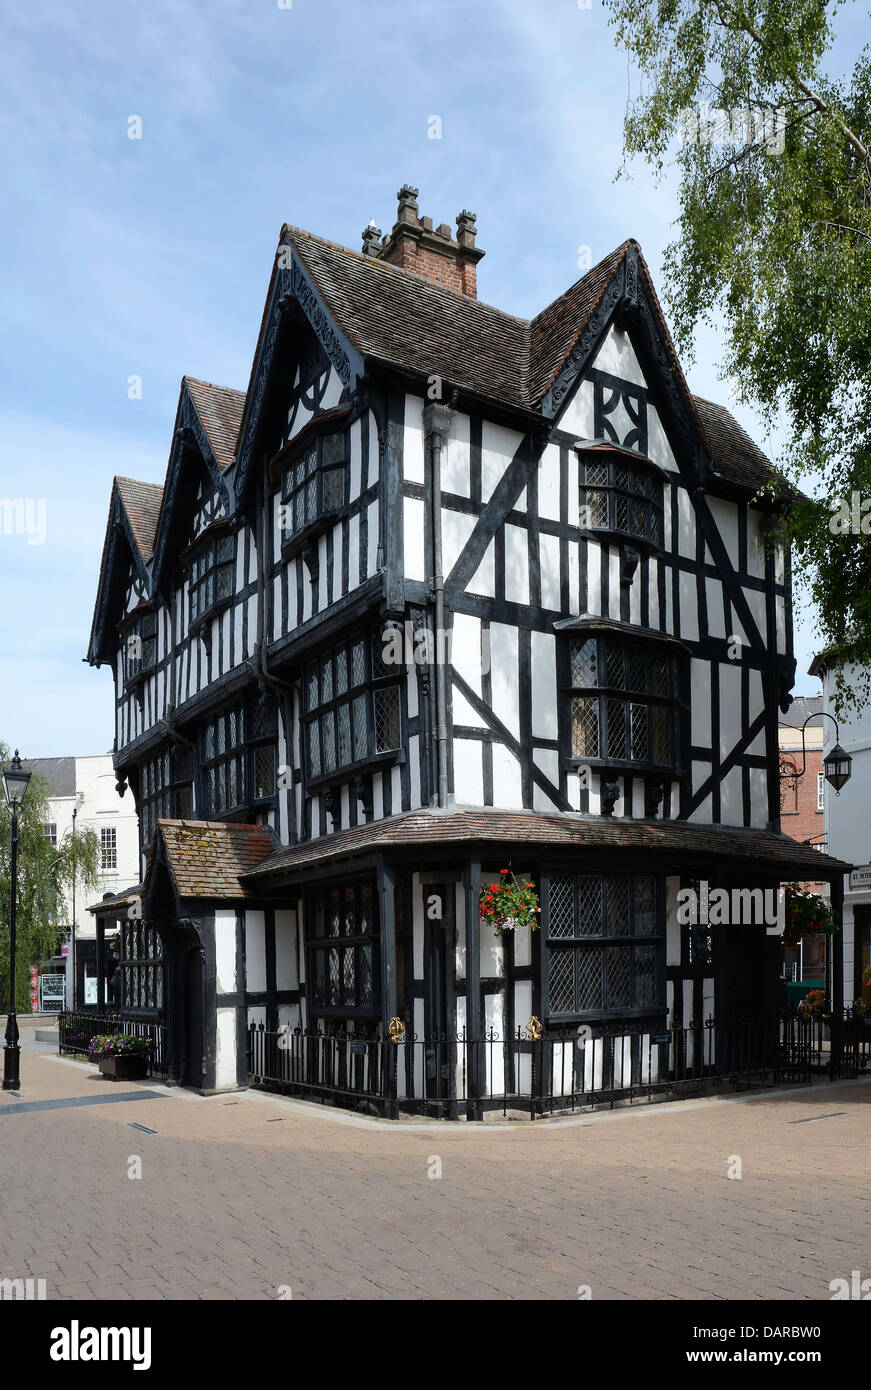 OLD MERCHANT HOUSE. HEREFORD. ENGLAND. UK